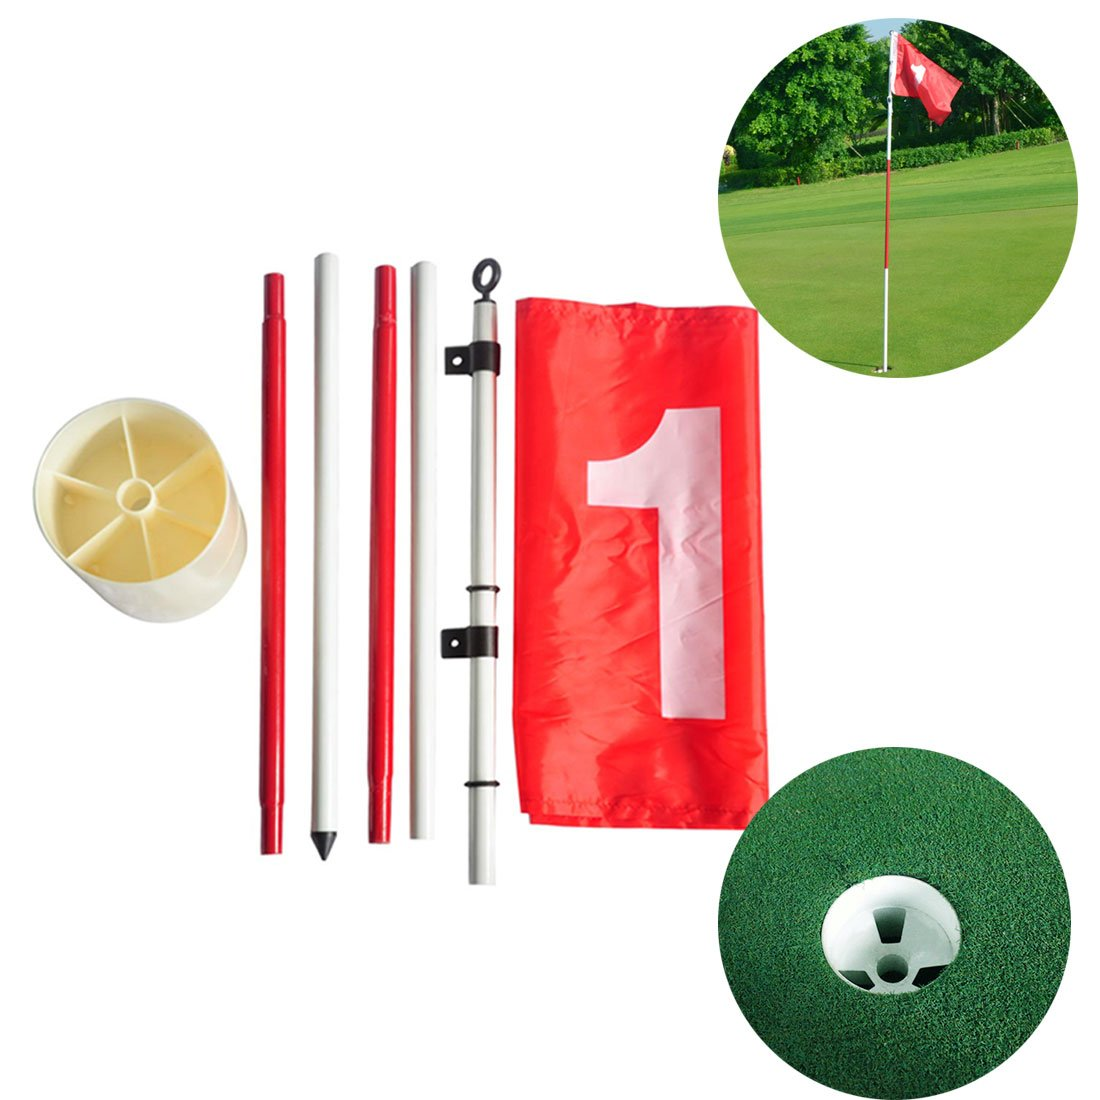 Funmall Golf Cup with Backyard Flag Pole